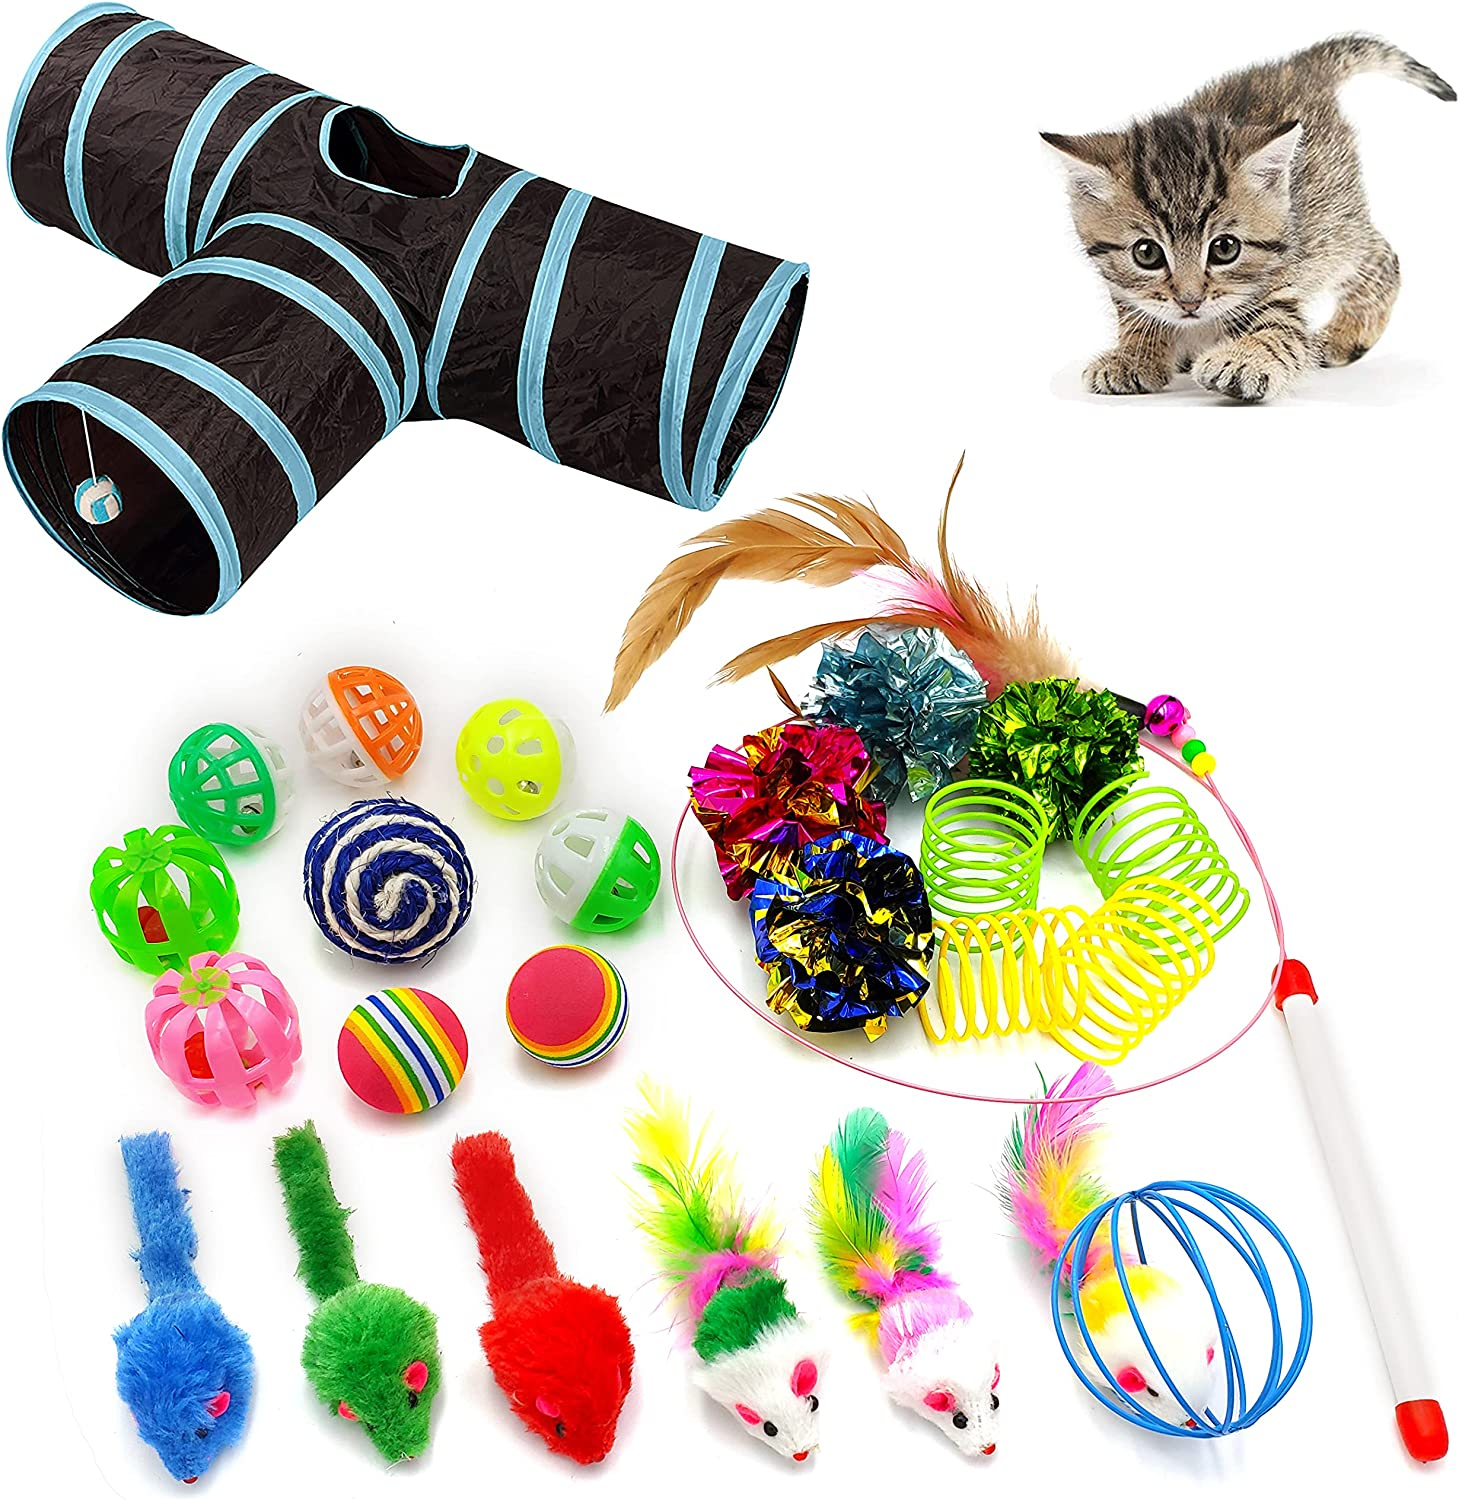 iCAGY Cat Seasonal Wrap Introduction Toys for Indoor Chicago Mall Assorted 25 Cats Stuf Interactive